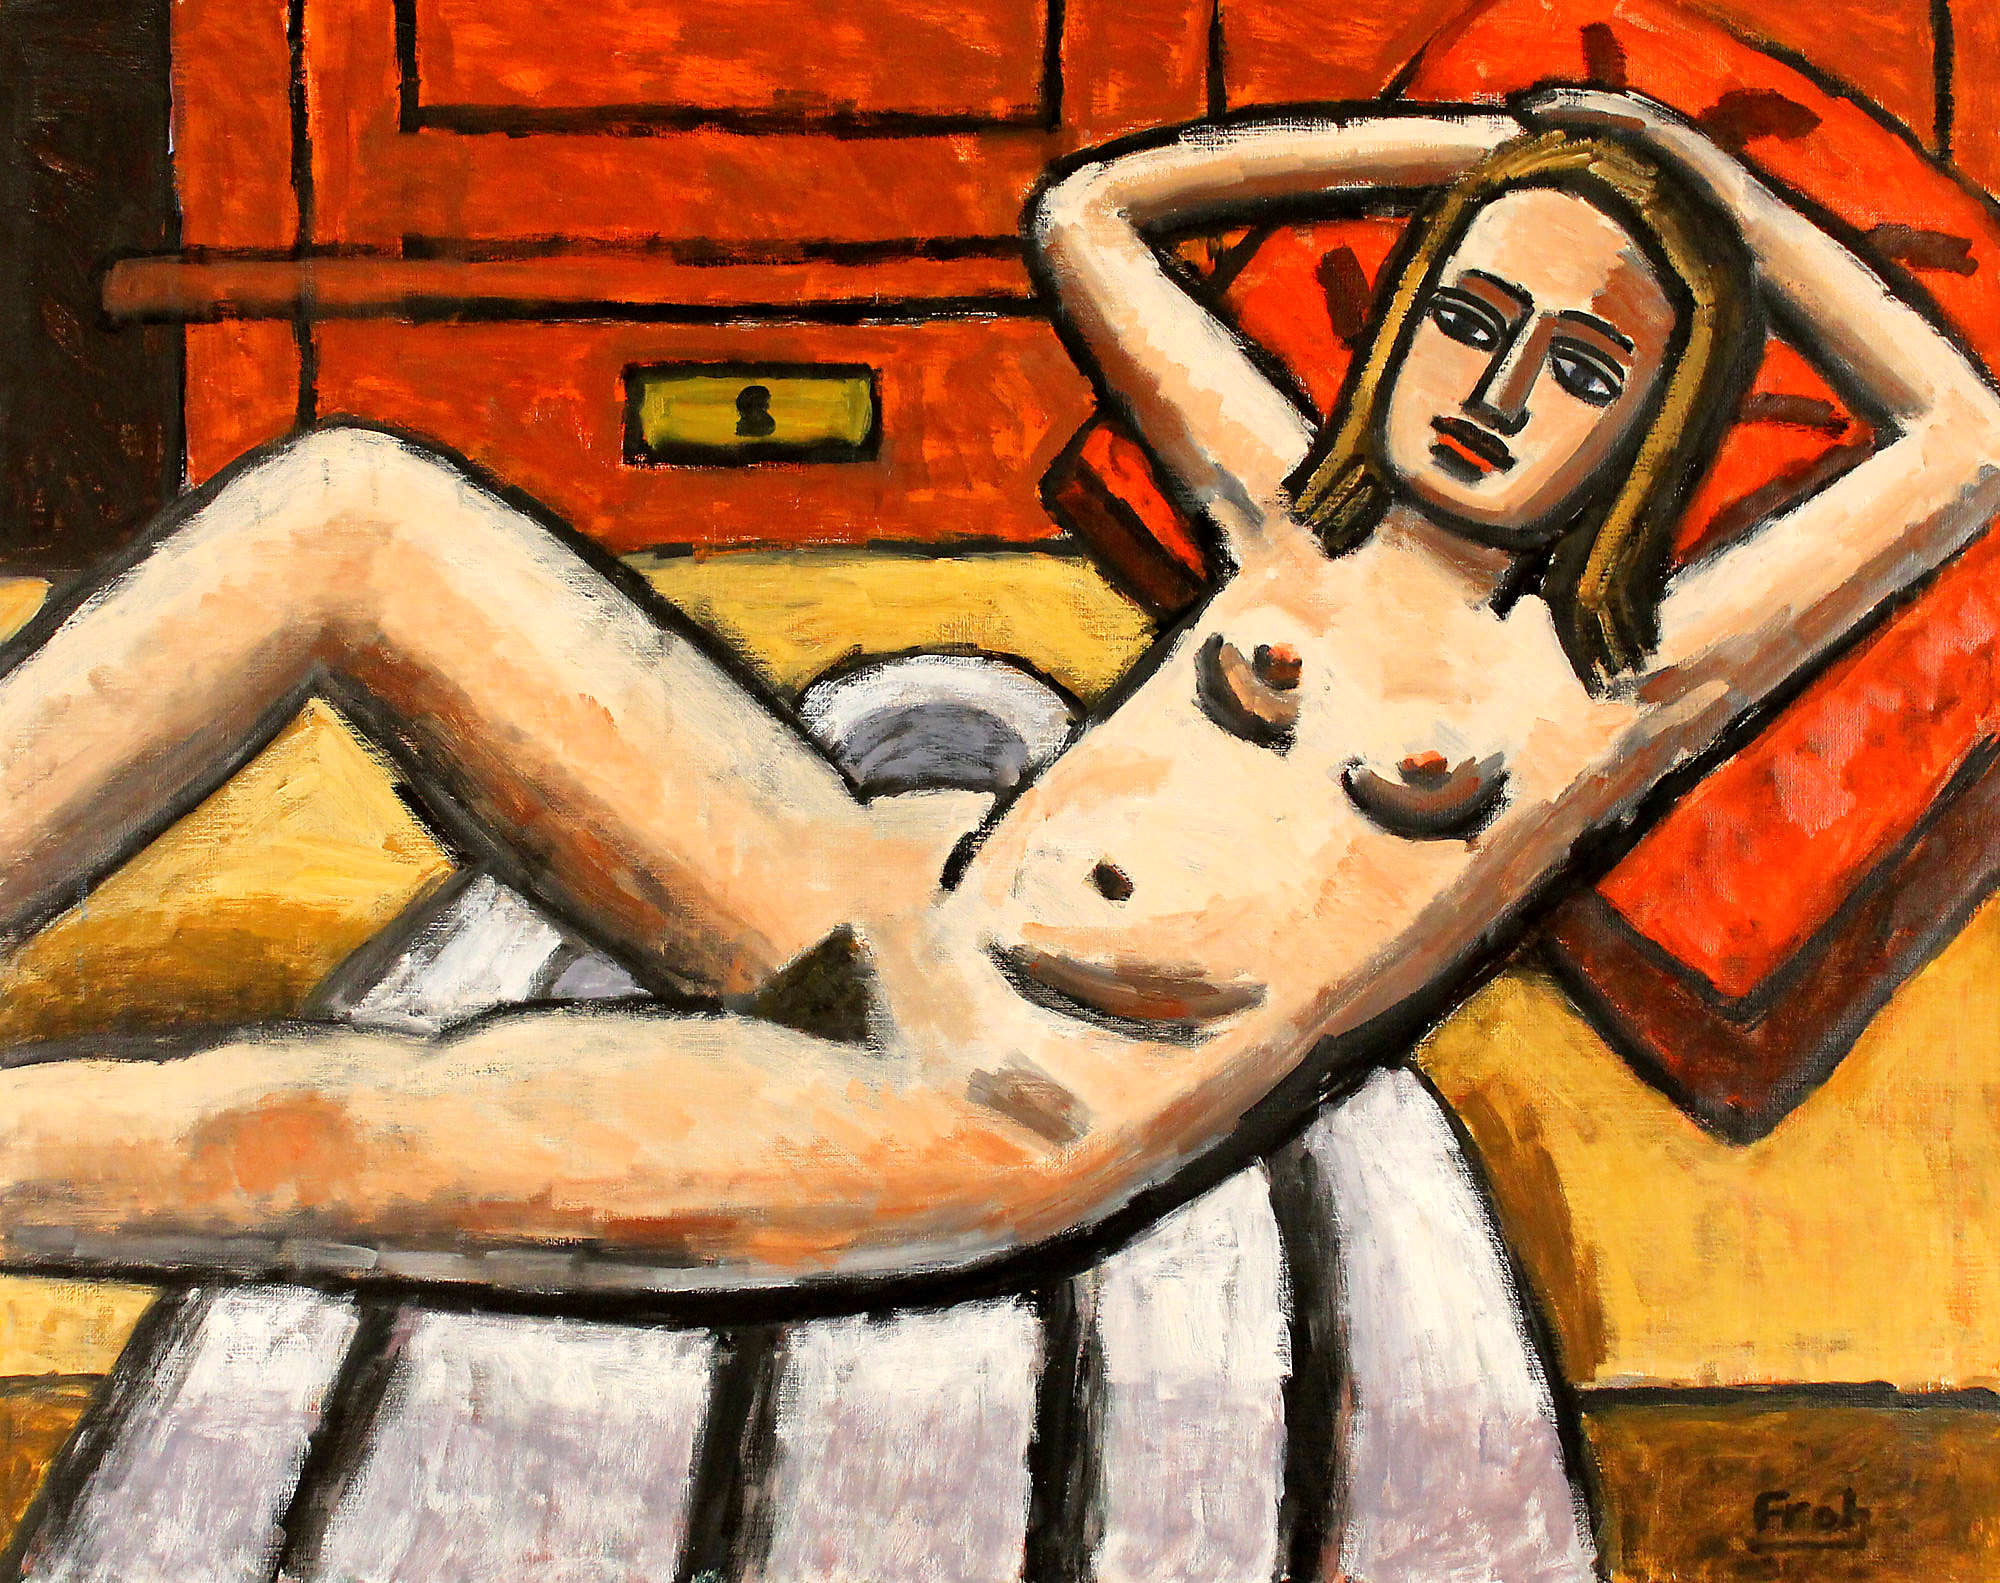 Reclining Nude, 2011, oil on linen, 73x92cm